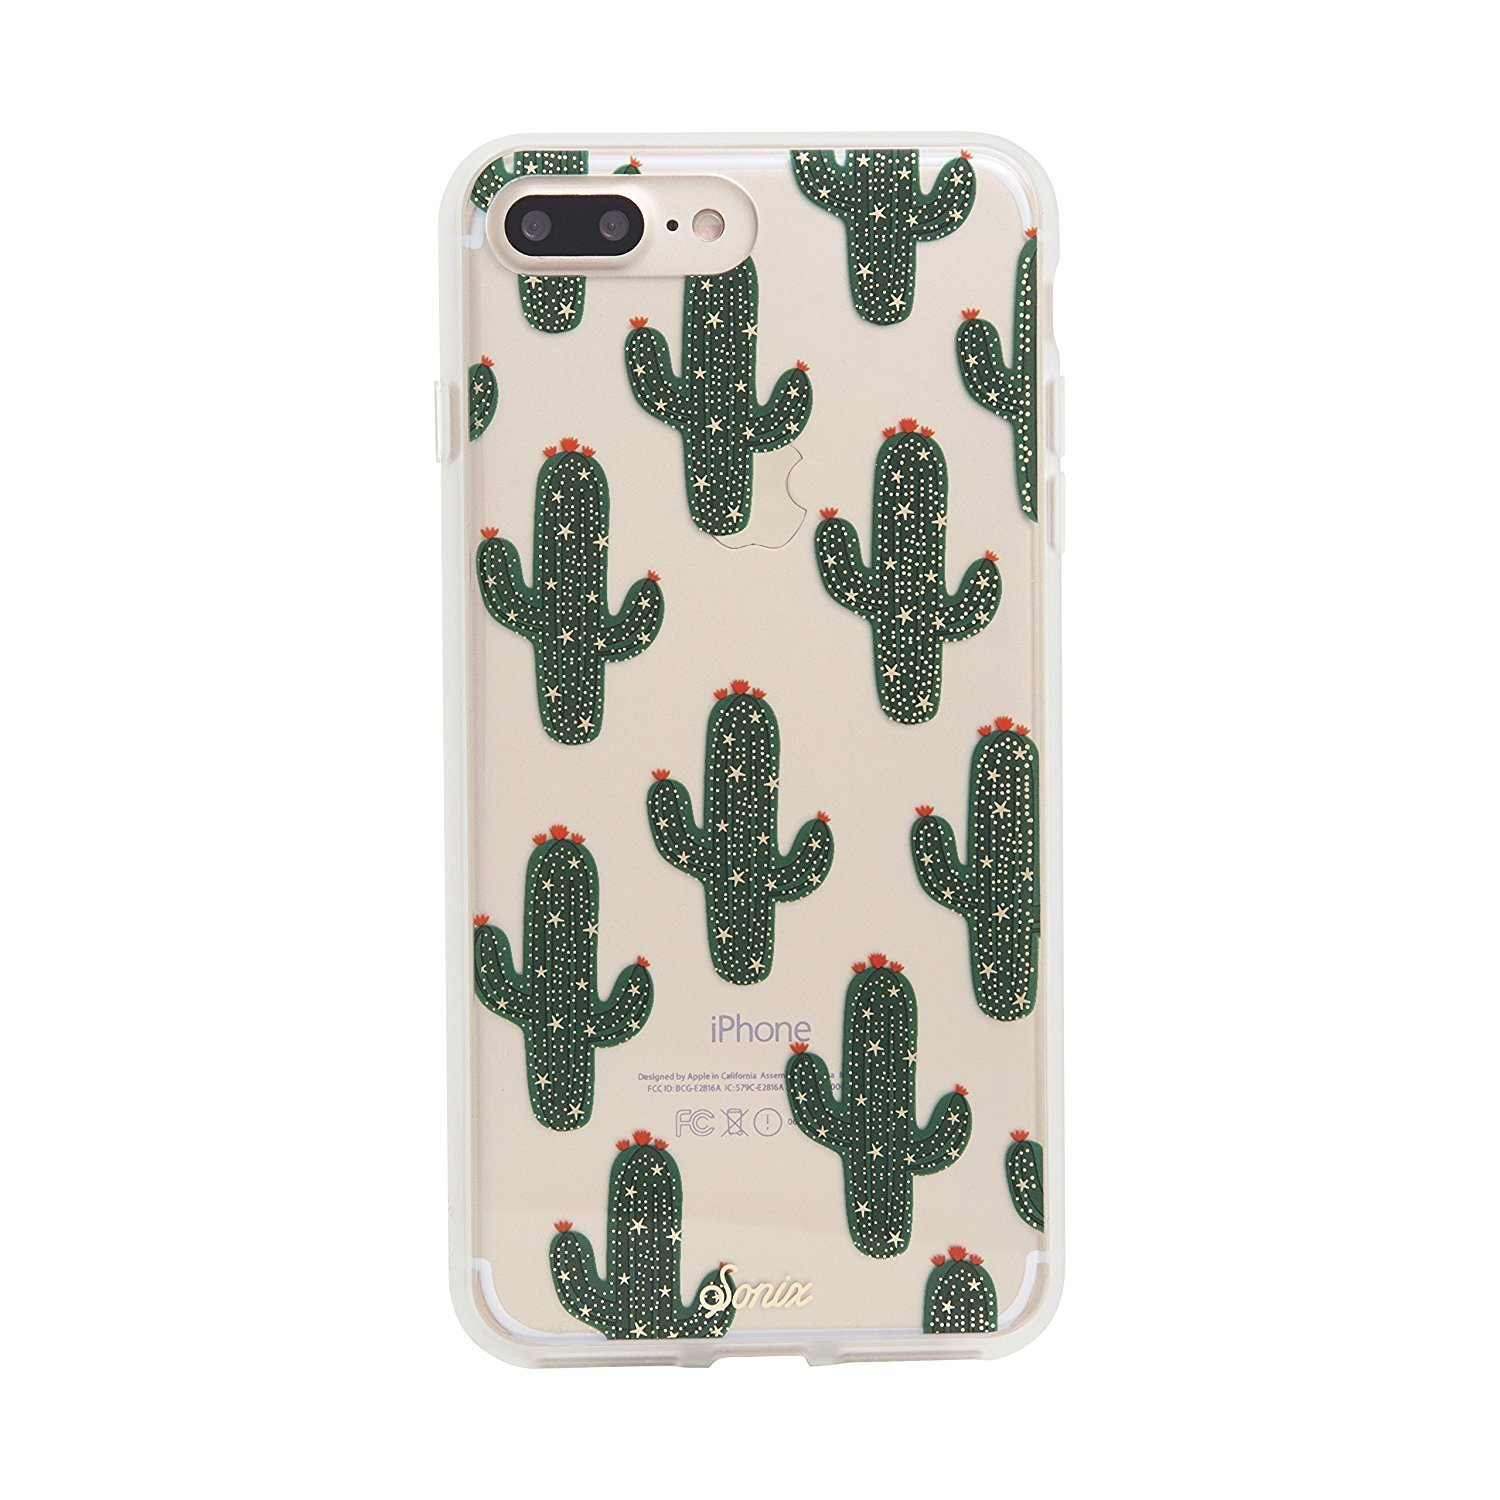 【Sonix】 iPhone7/7 Plusケース★サボテンSaguaro